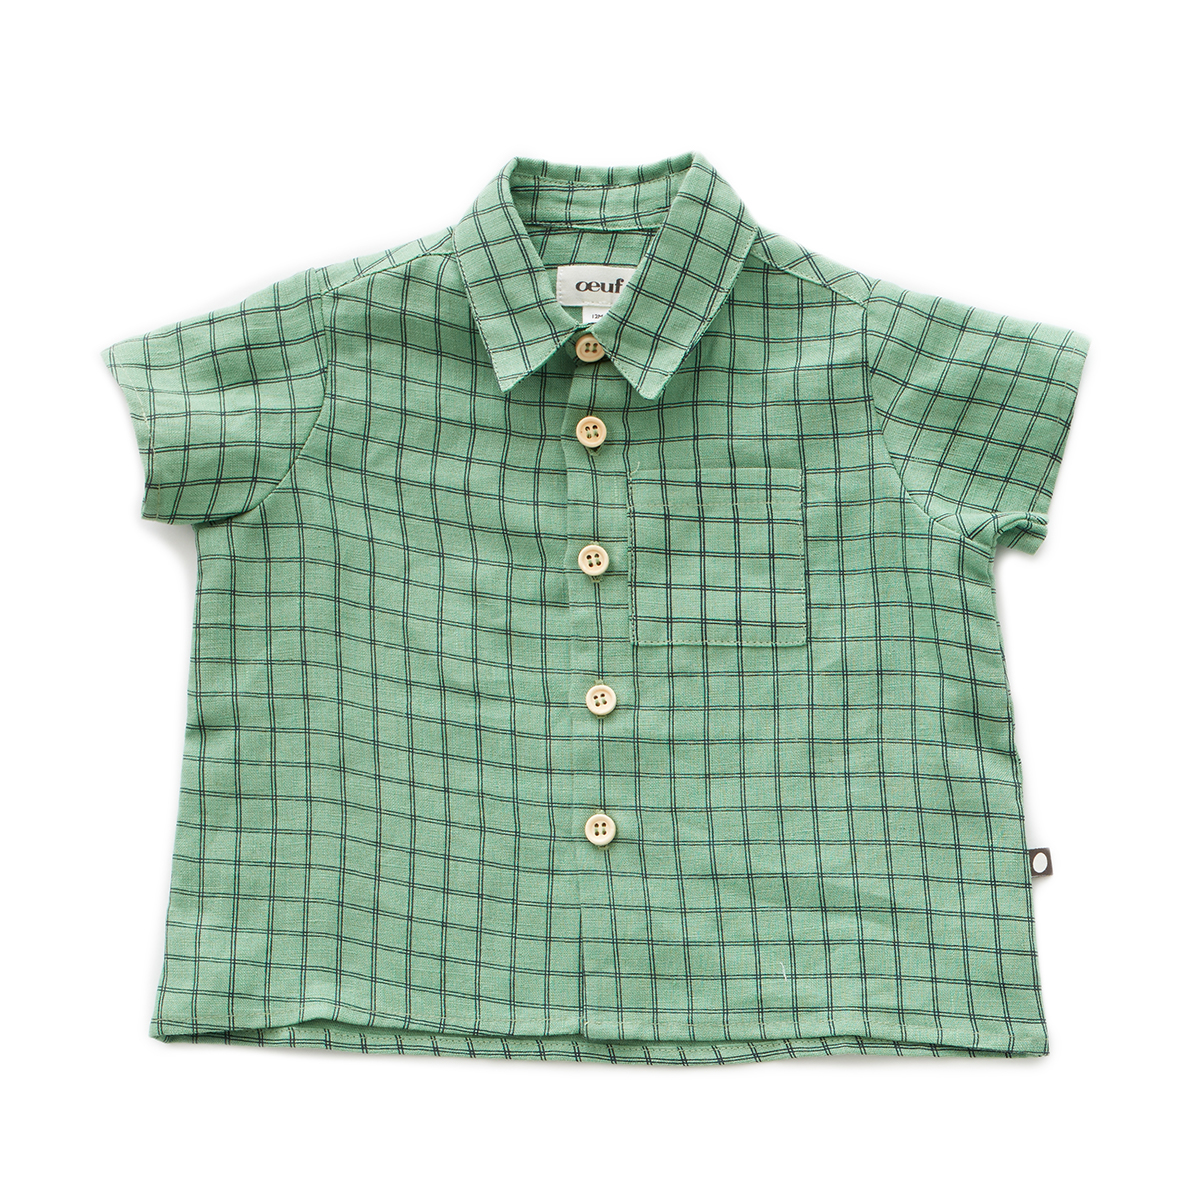 Oeuf Baby/Toddler/Big Kid Button Down Shirt - Green Checks